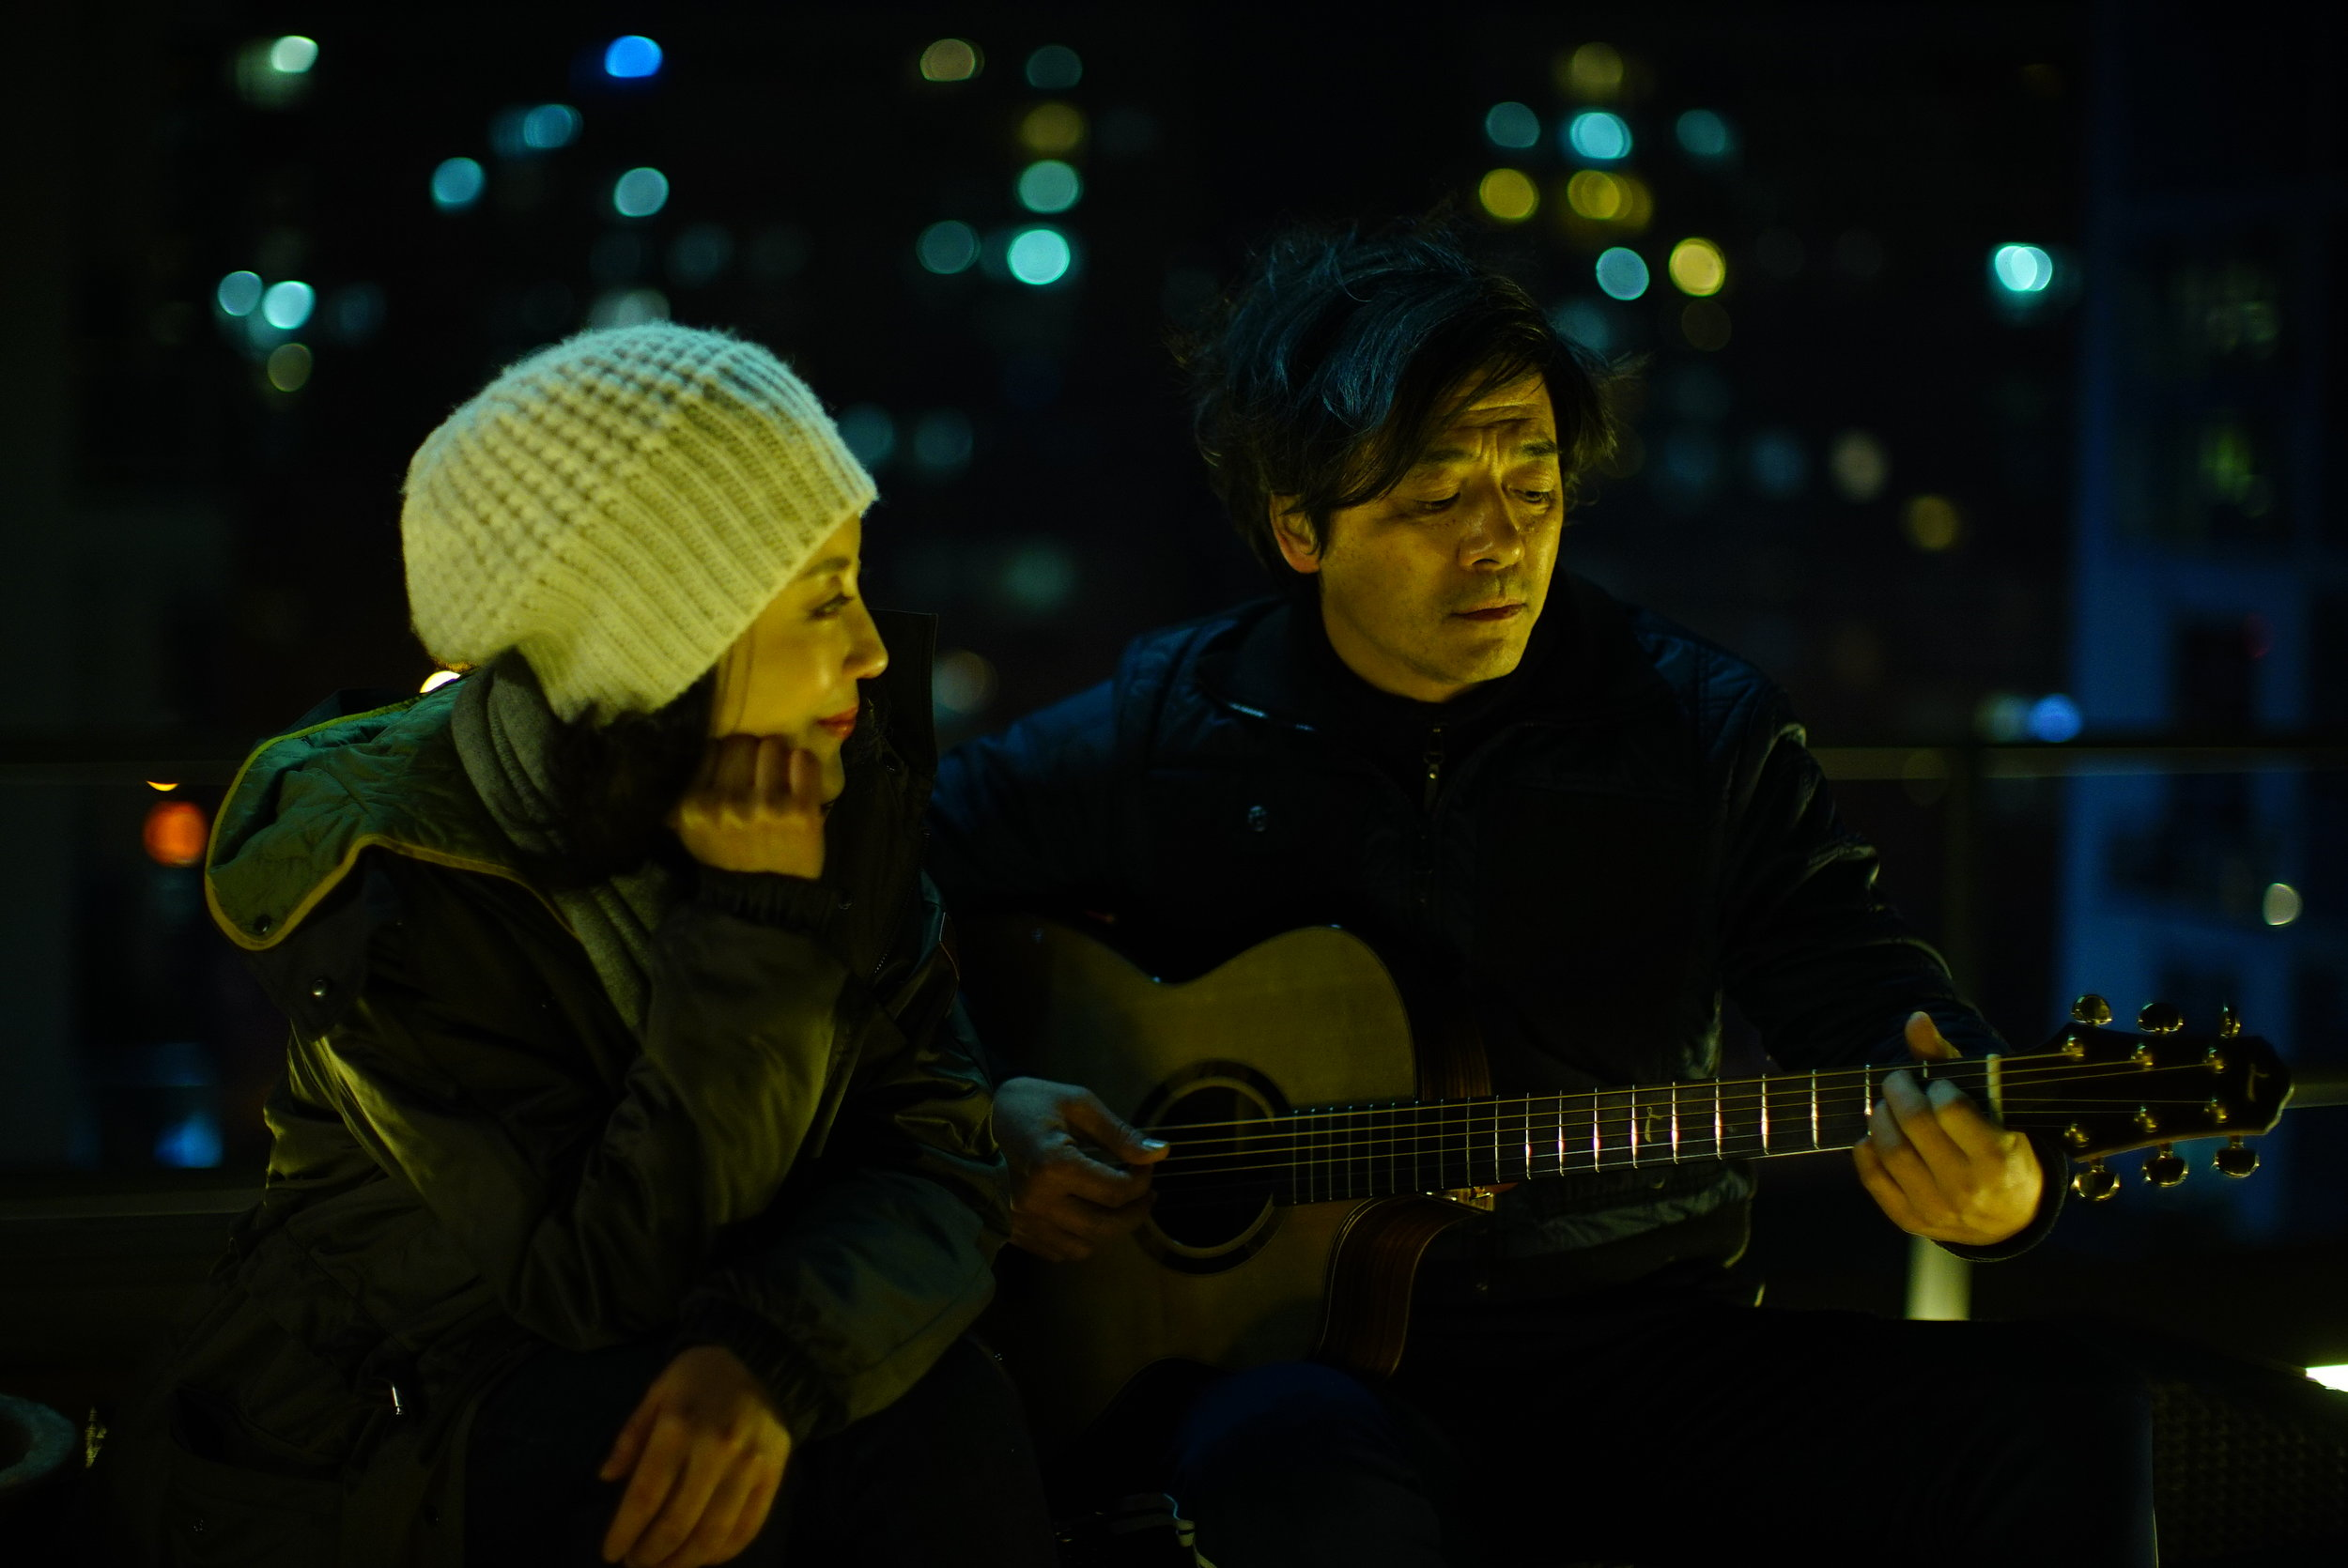 NIRVANA - CHINA    Golden Globe Submission for the Best Foreign Language Film Award